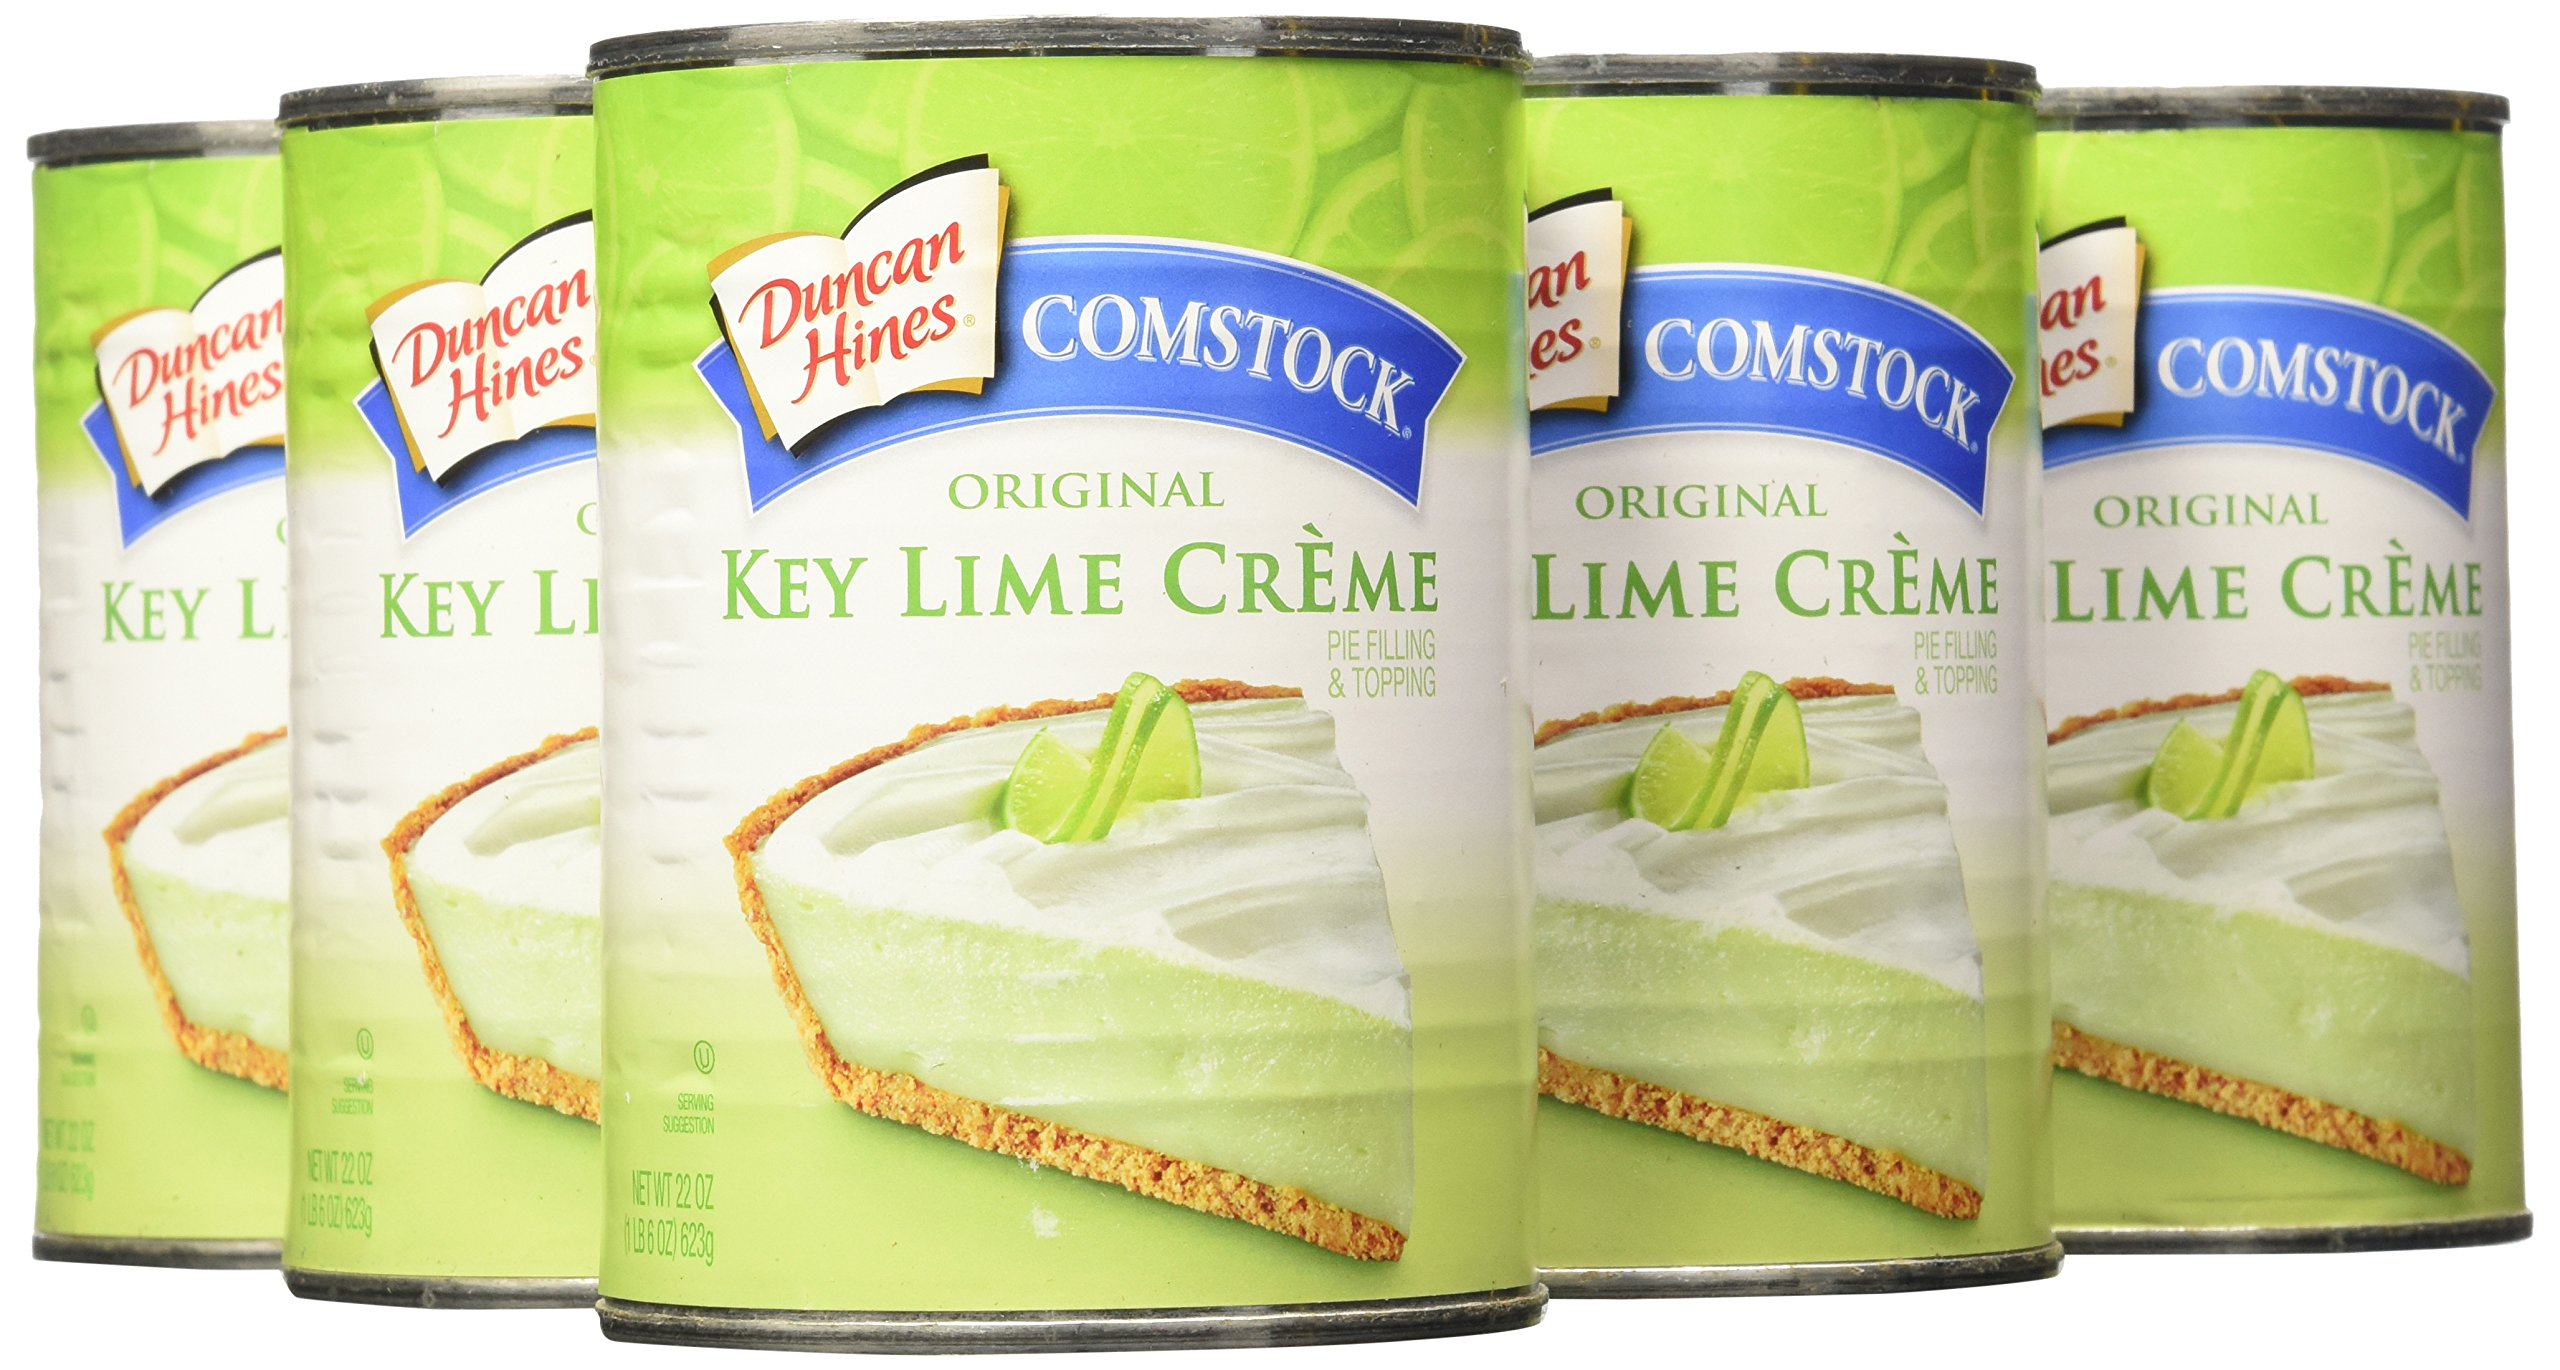 Comstock Original Pie Filling & Topping, Key Lime Creme, 22 Ounce (Pack of 8)